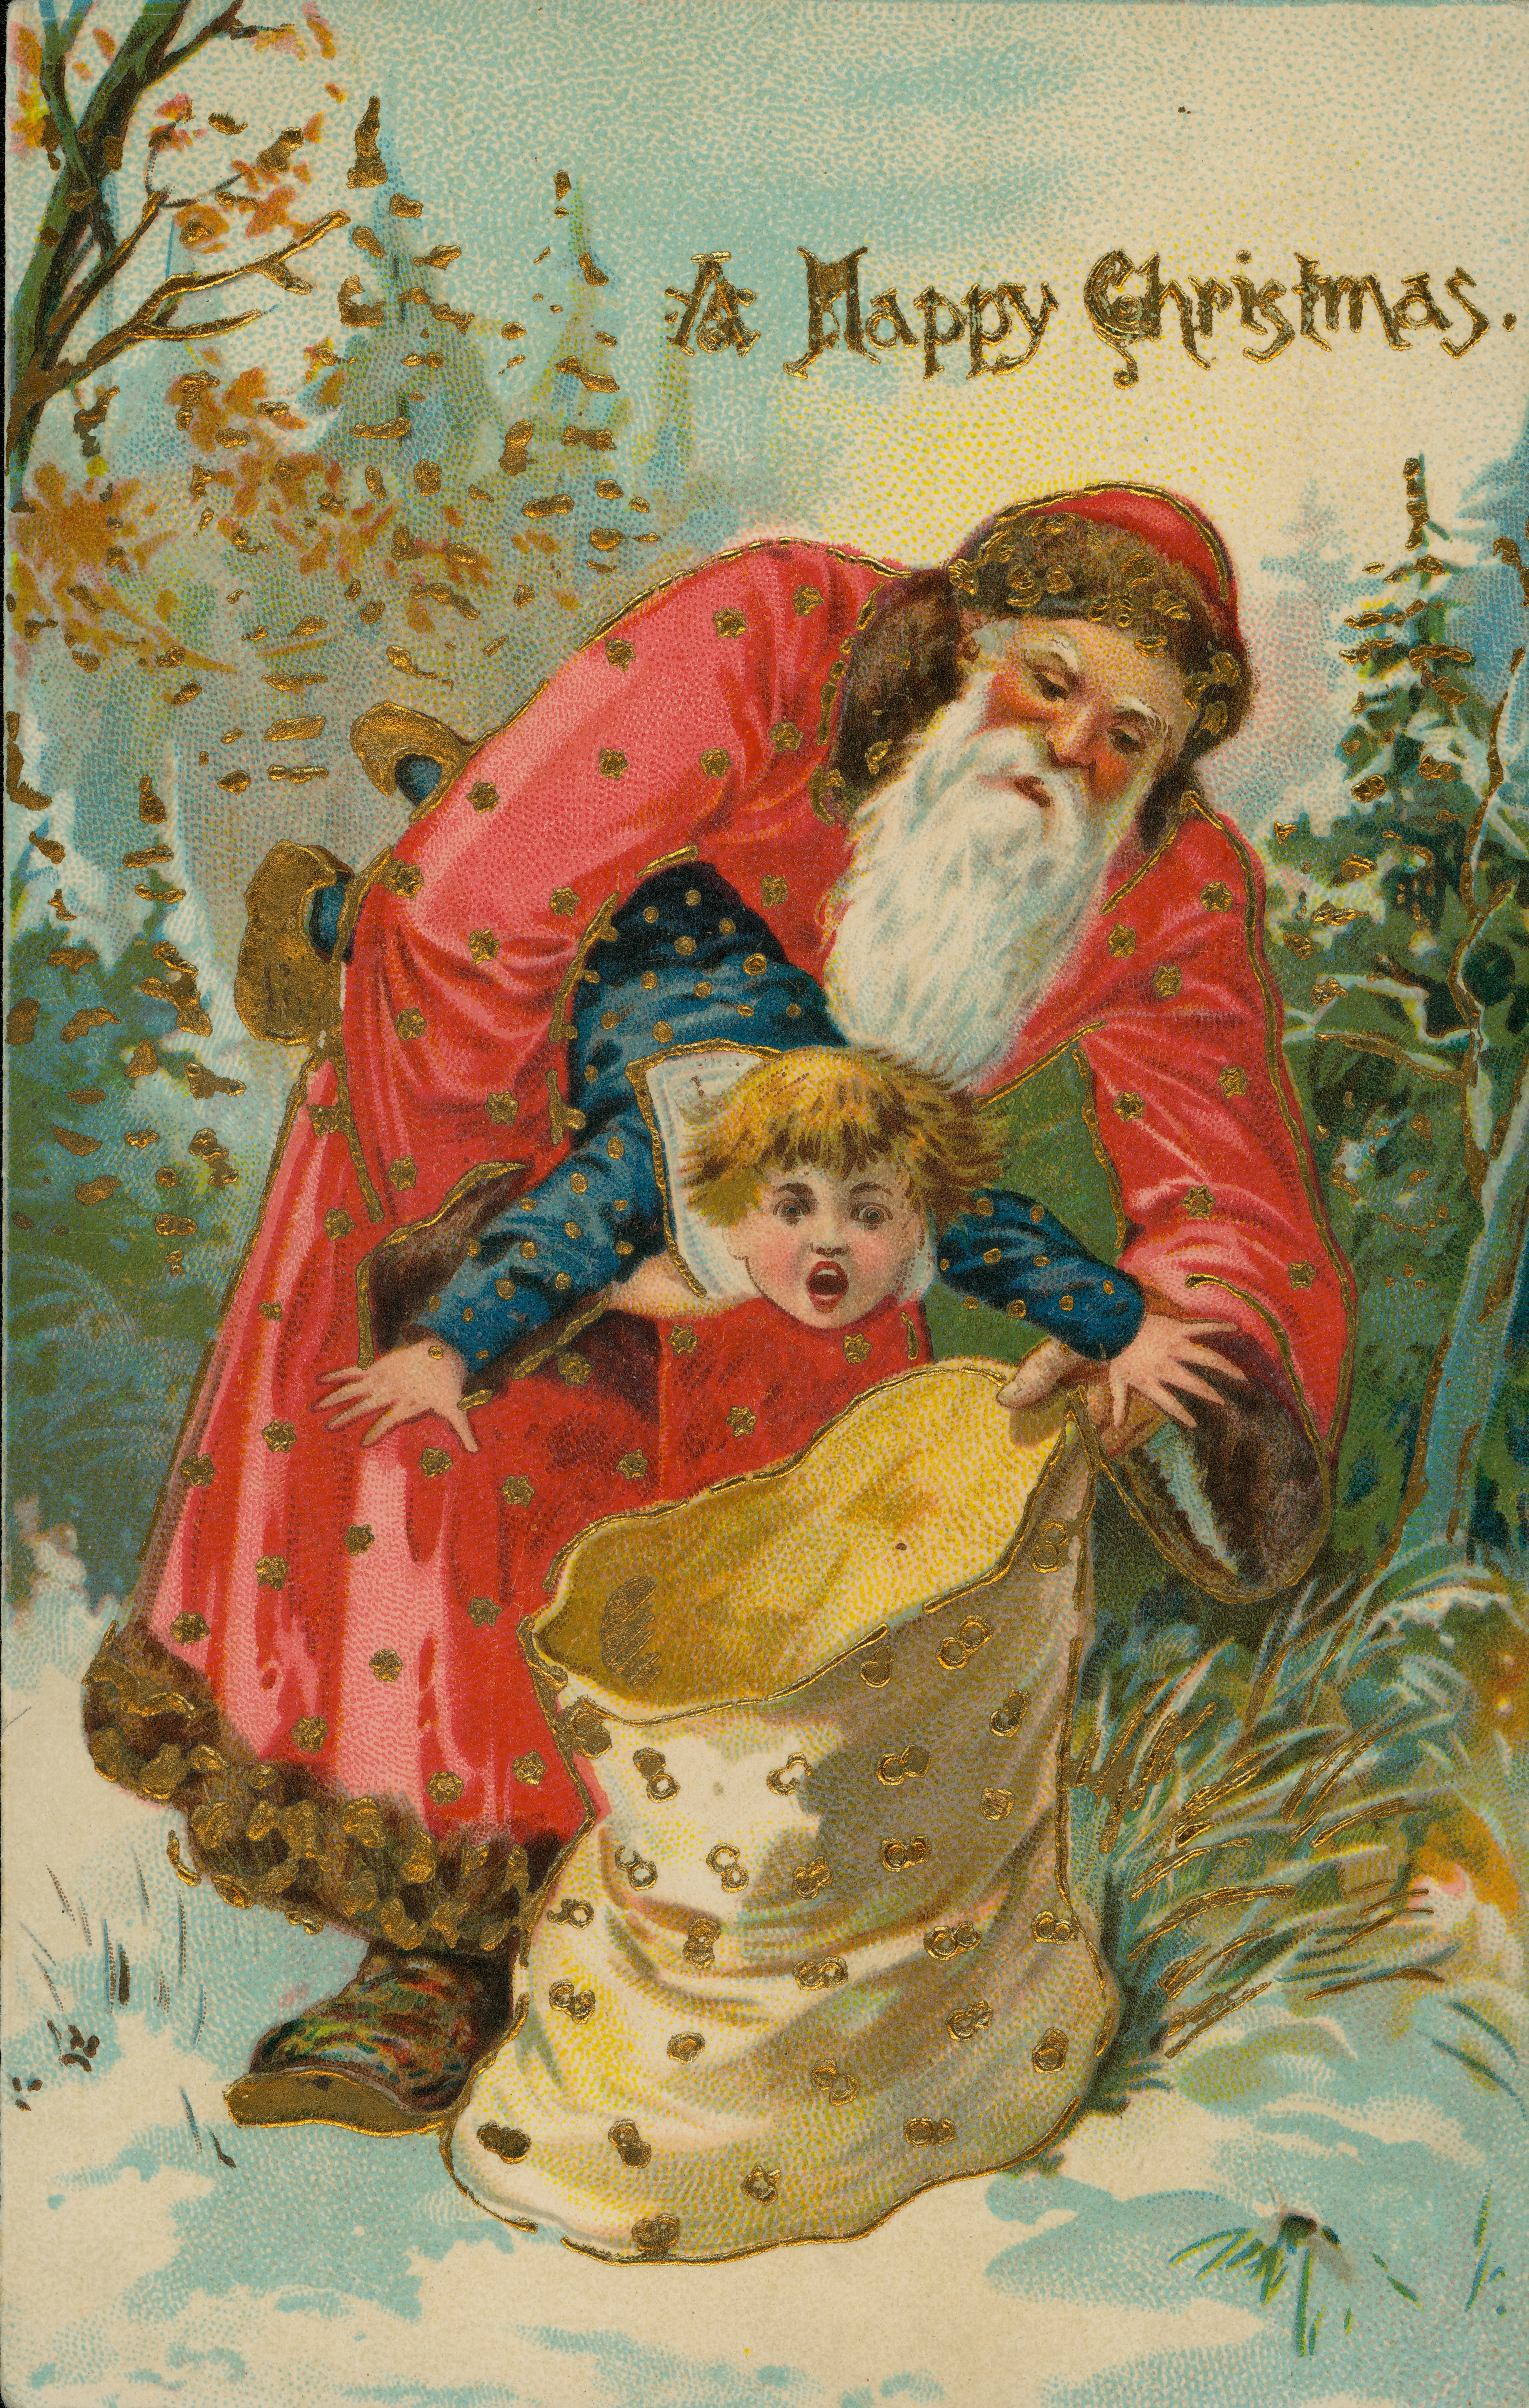 Santa Claus Missouri History Museum Photographs and Prints Collections c 1900